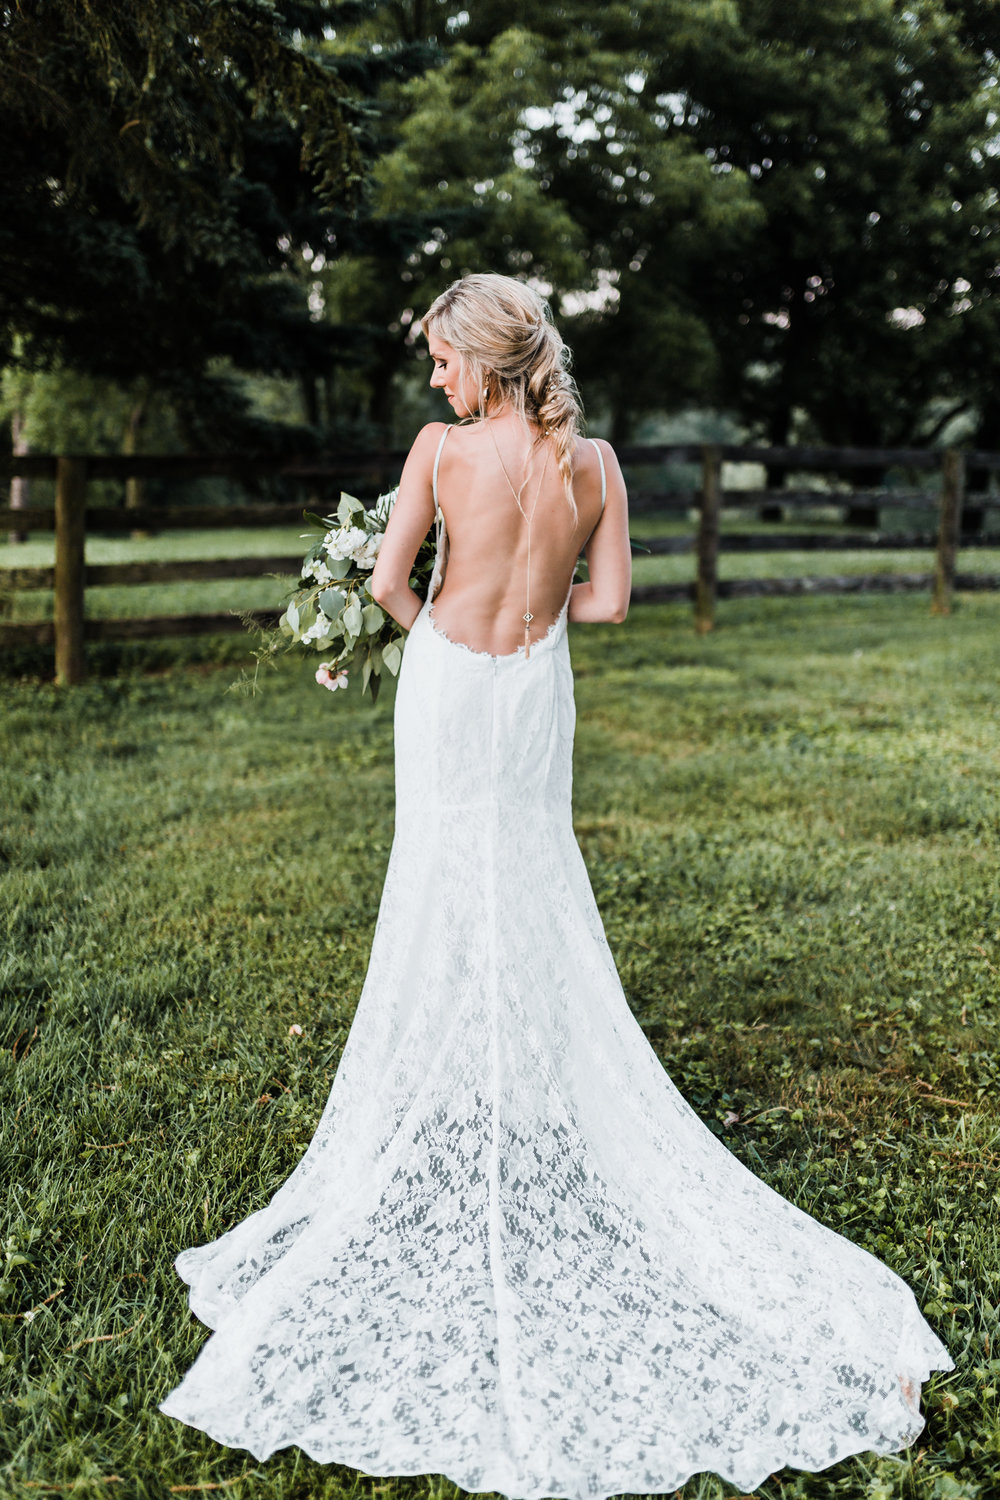 dreamy low back wedding gown - lace sheath wedding dress - backdrop necklace - bridal hair vine - diy bridal details